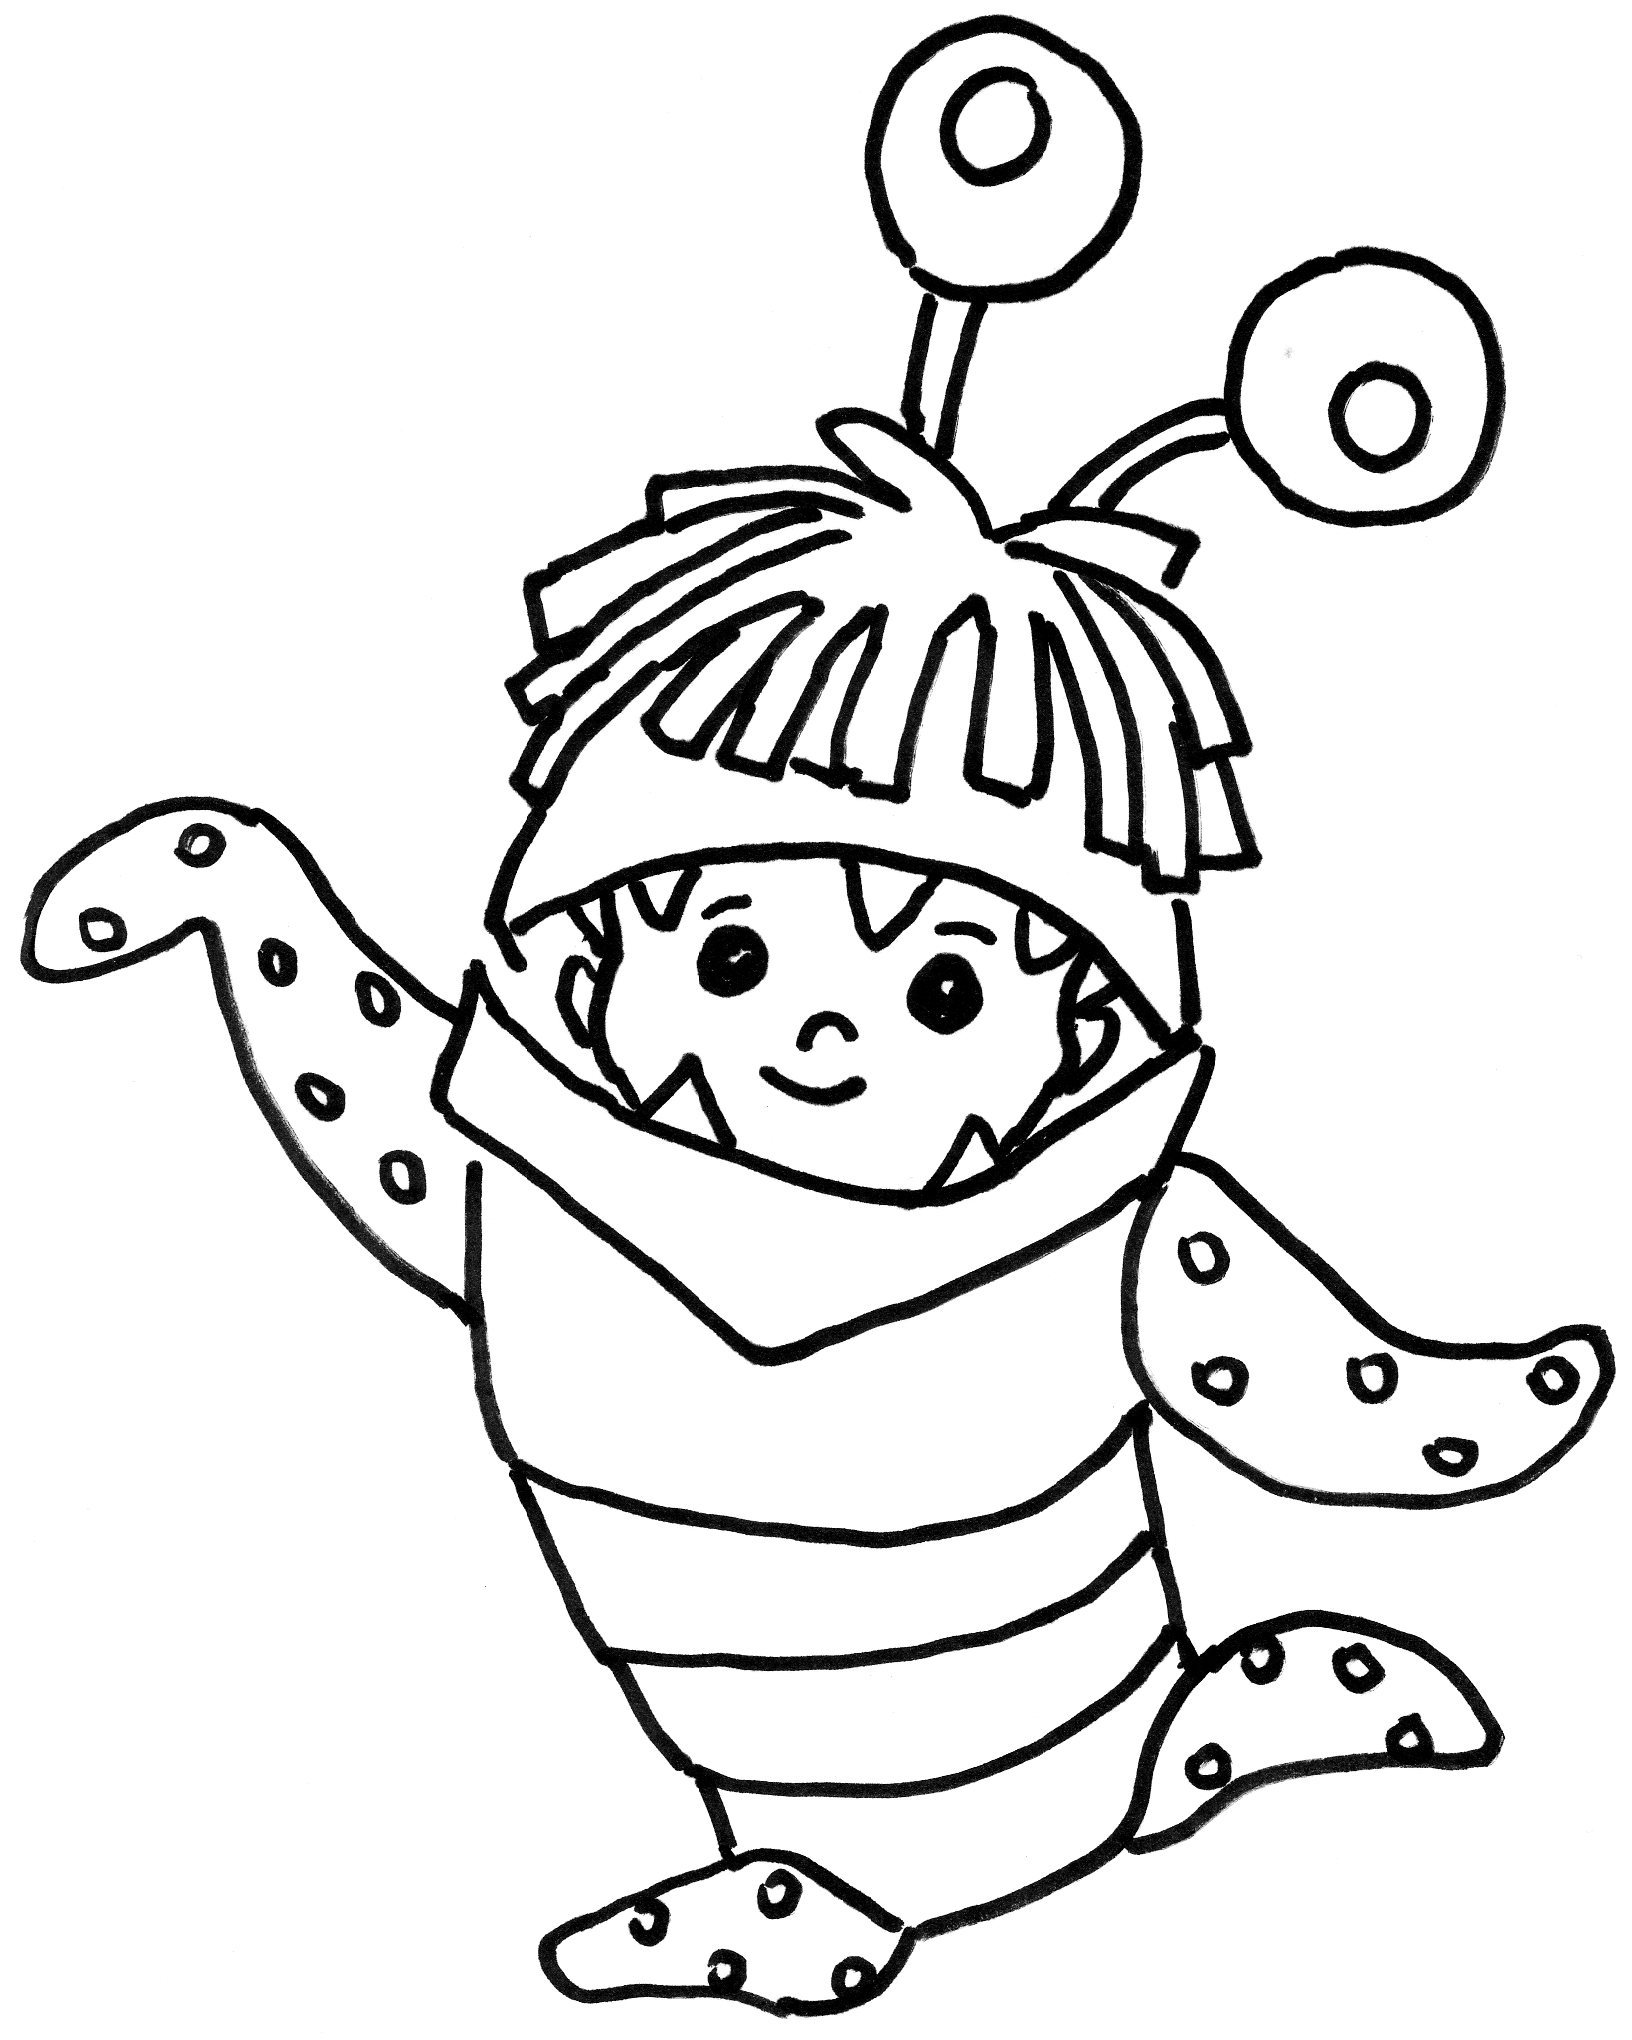 1632x2040 Monsters Inc Coloring Pages Only Monstersinccoloringpages To Print